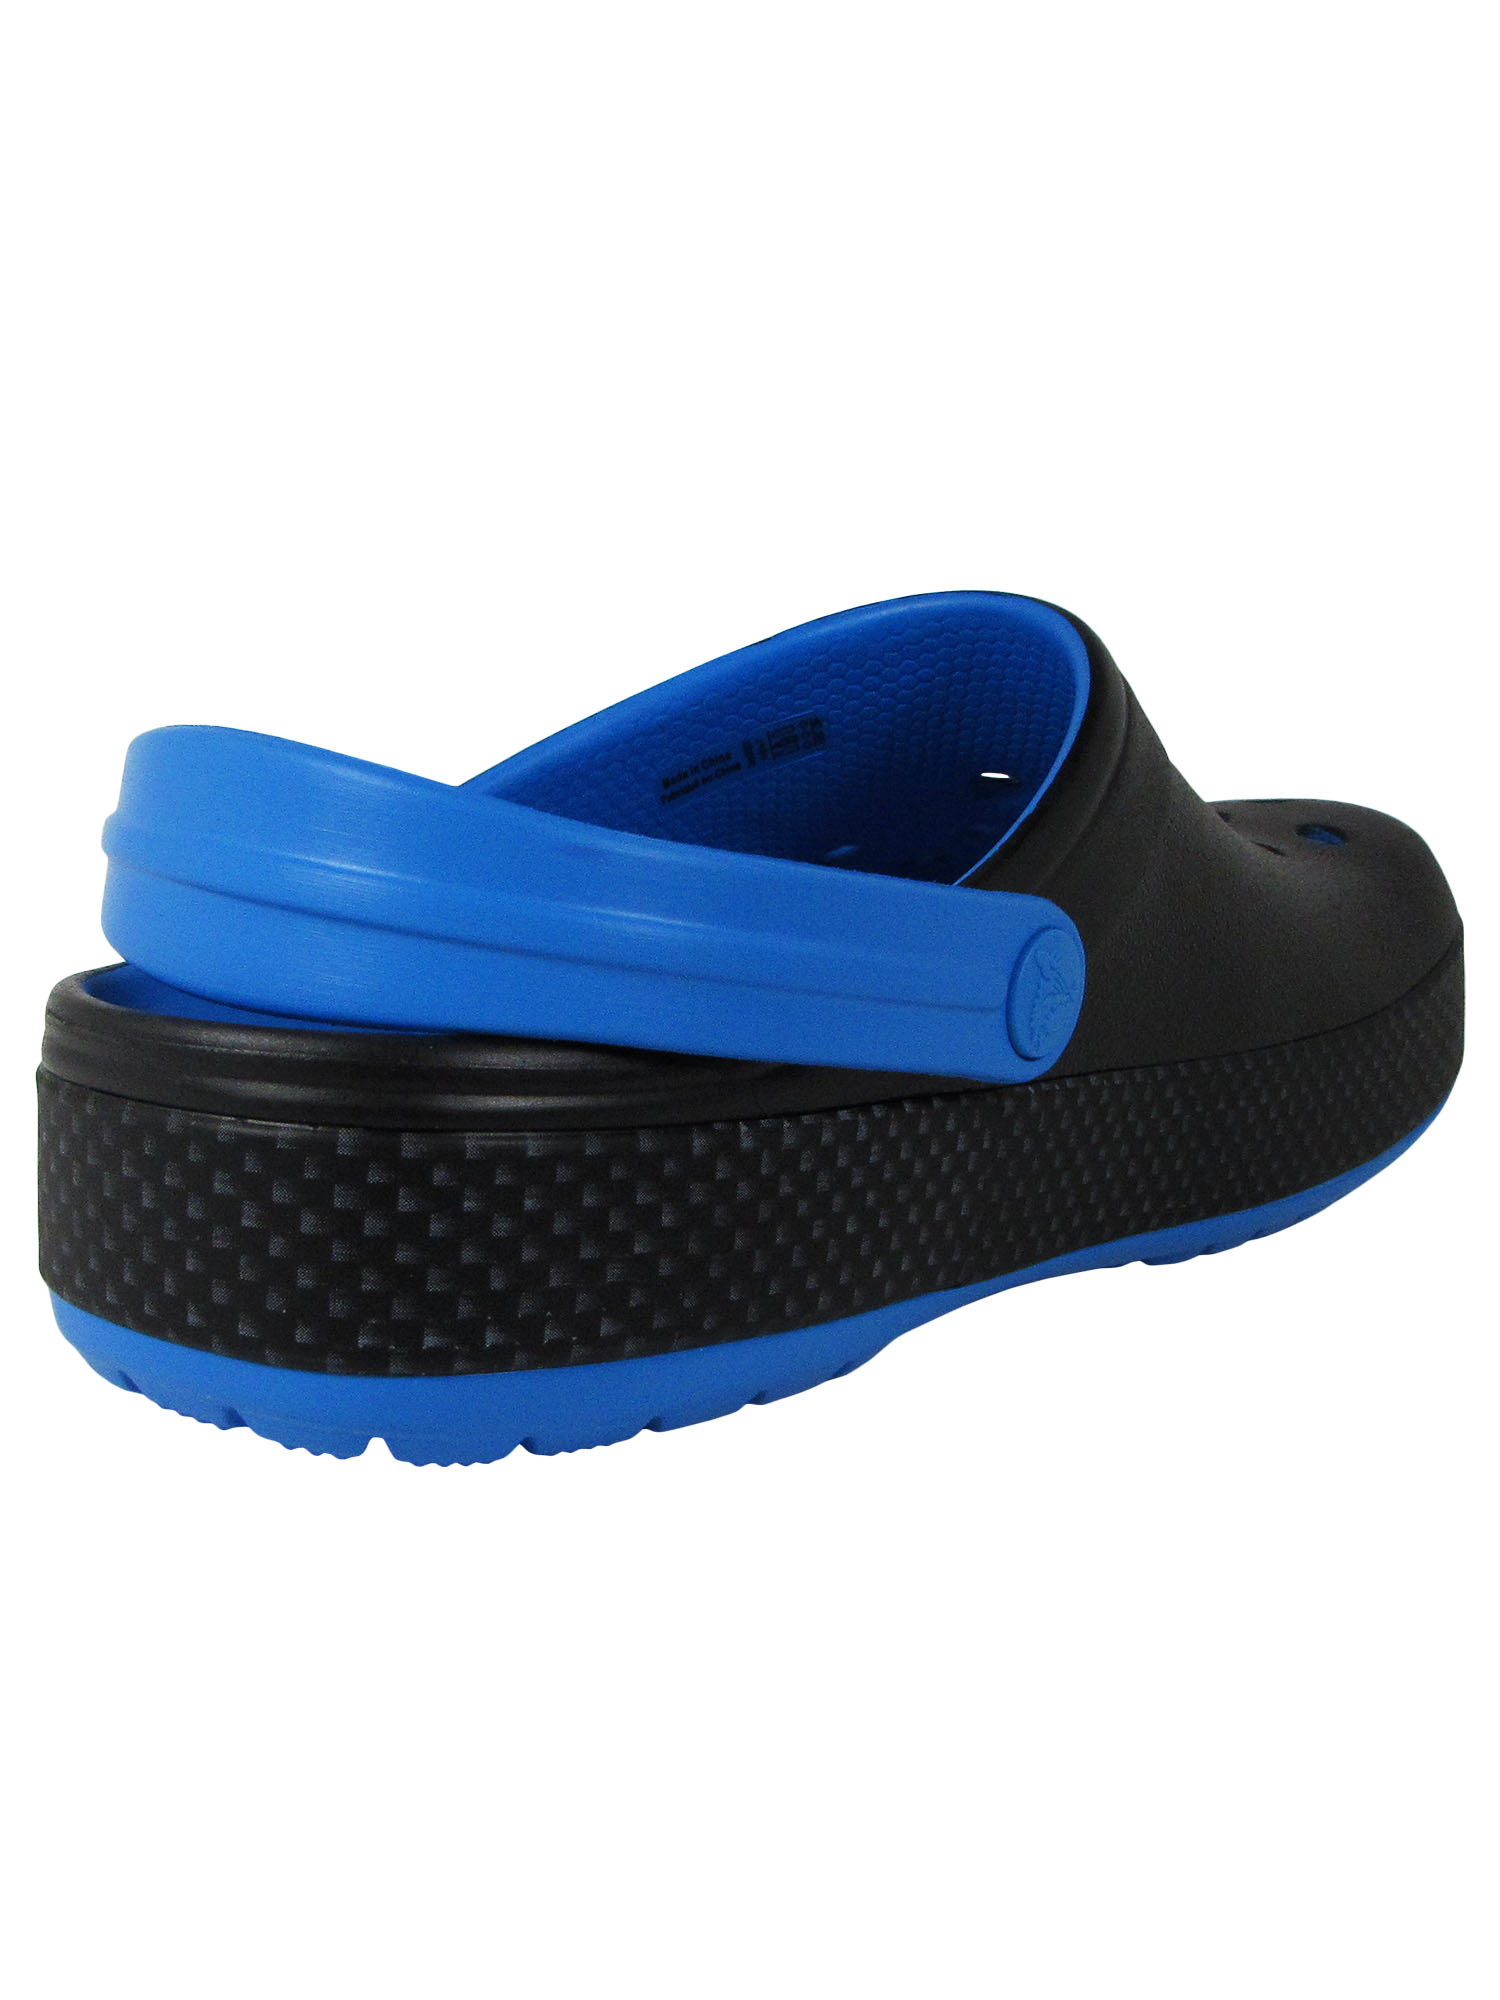 Crocs-Crocband-Carbon-Graphic-Clog thumbnail 4